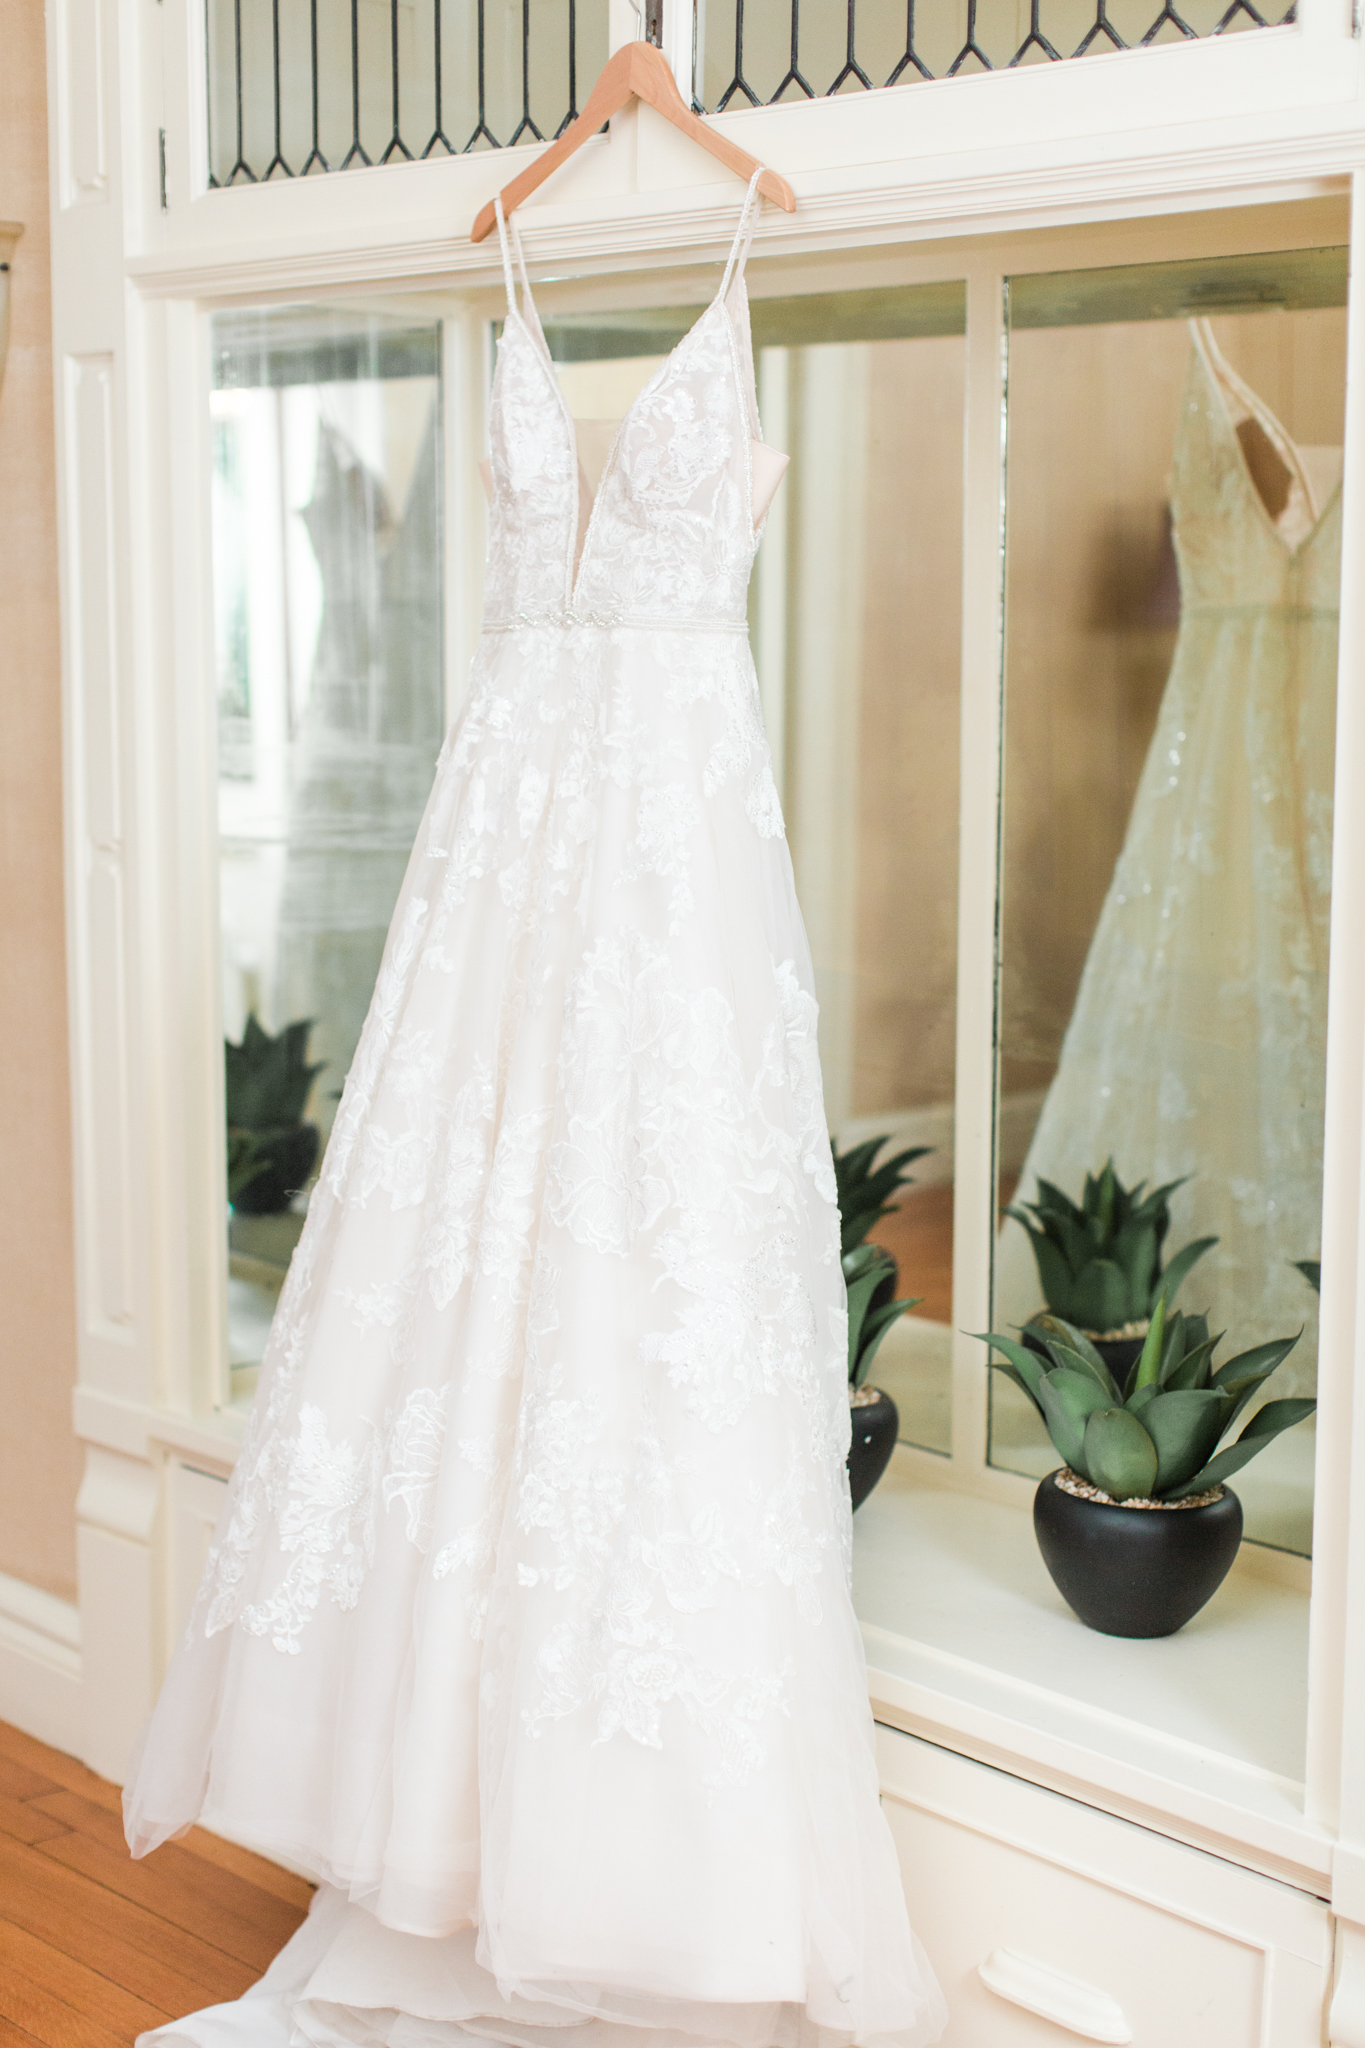 Beautiful A-Line wedding dress from Ruby Bridal Boutique - Pearl Weddings & Events